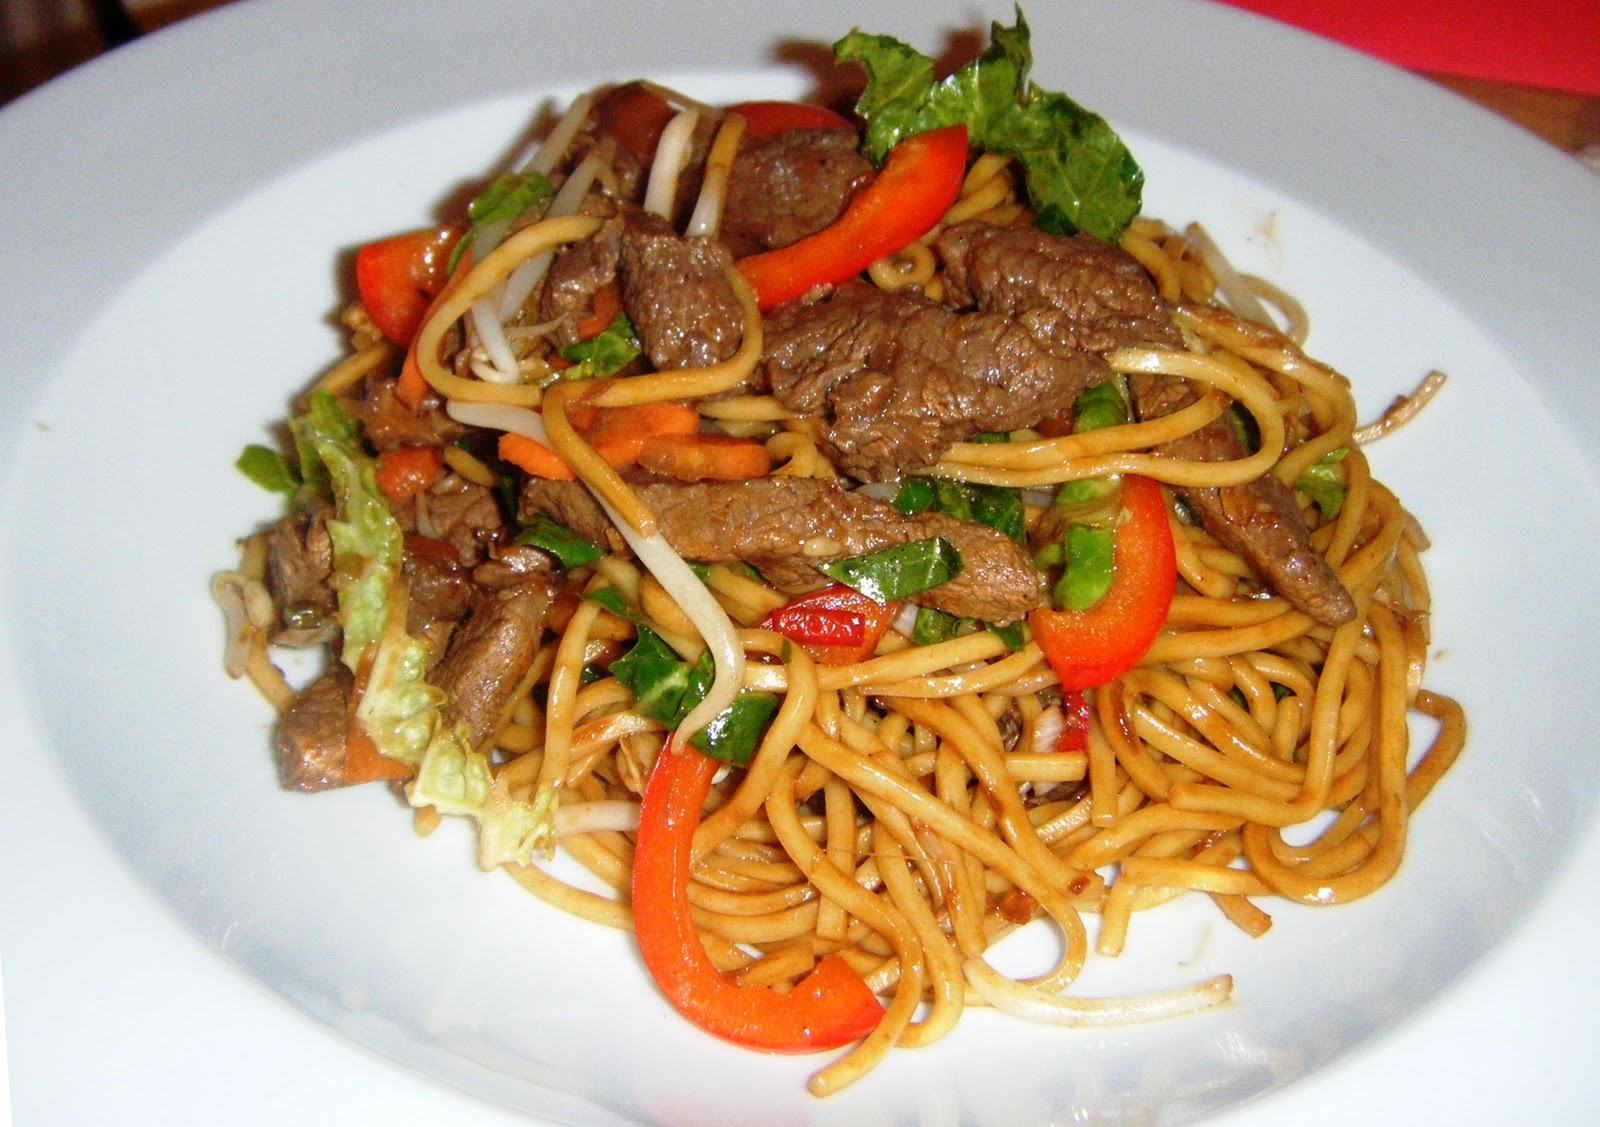 The Best Recipes Stir Fried Beef With Egg Noodles